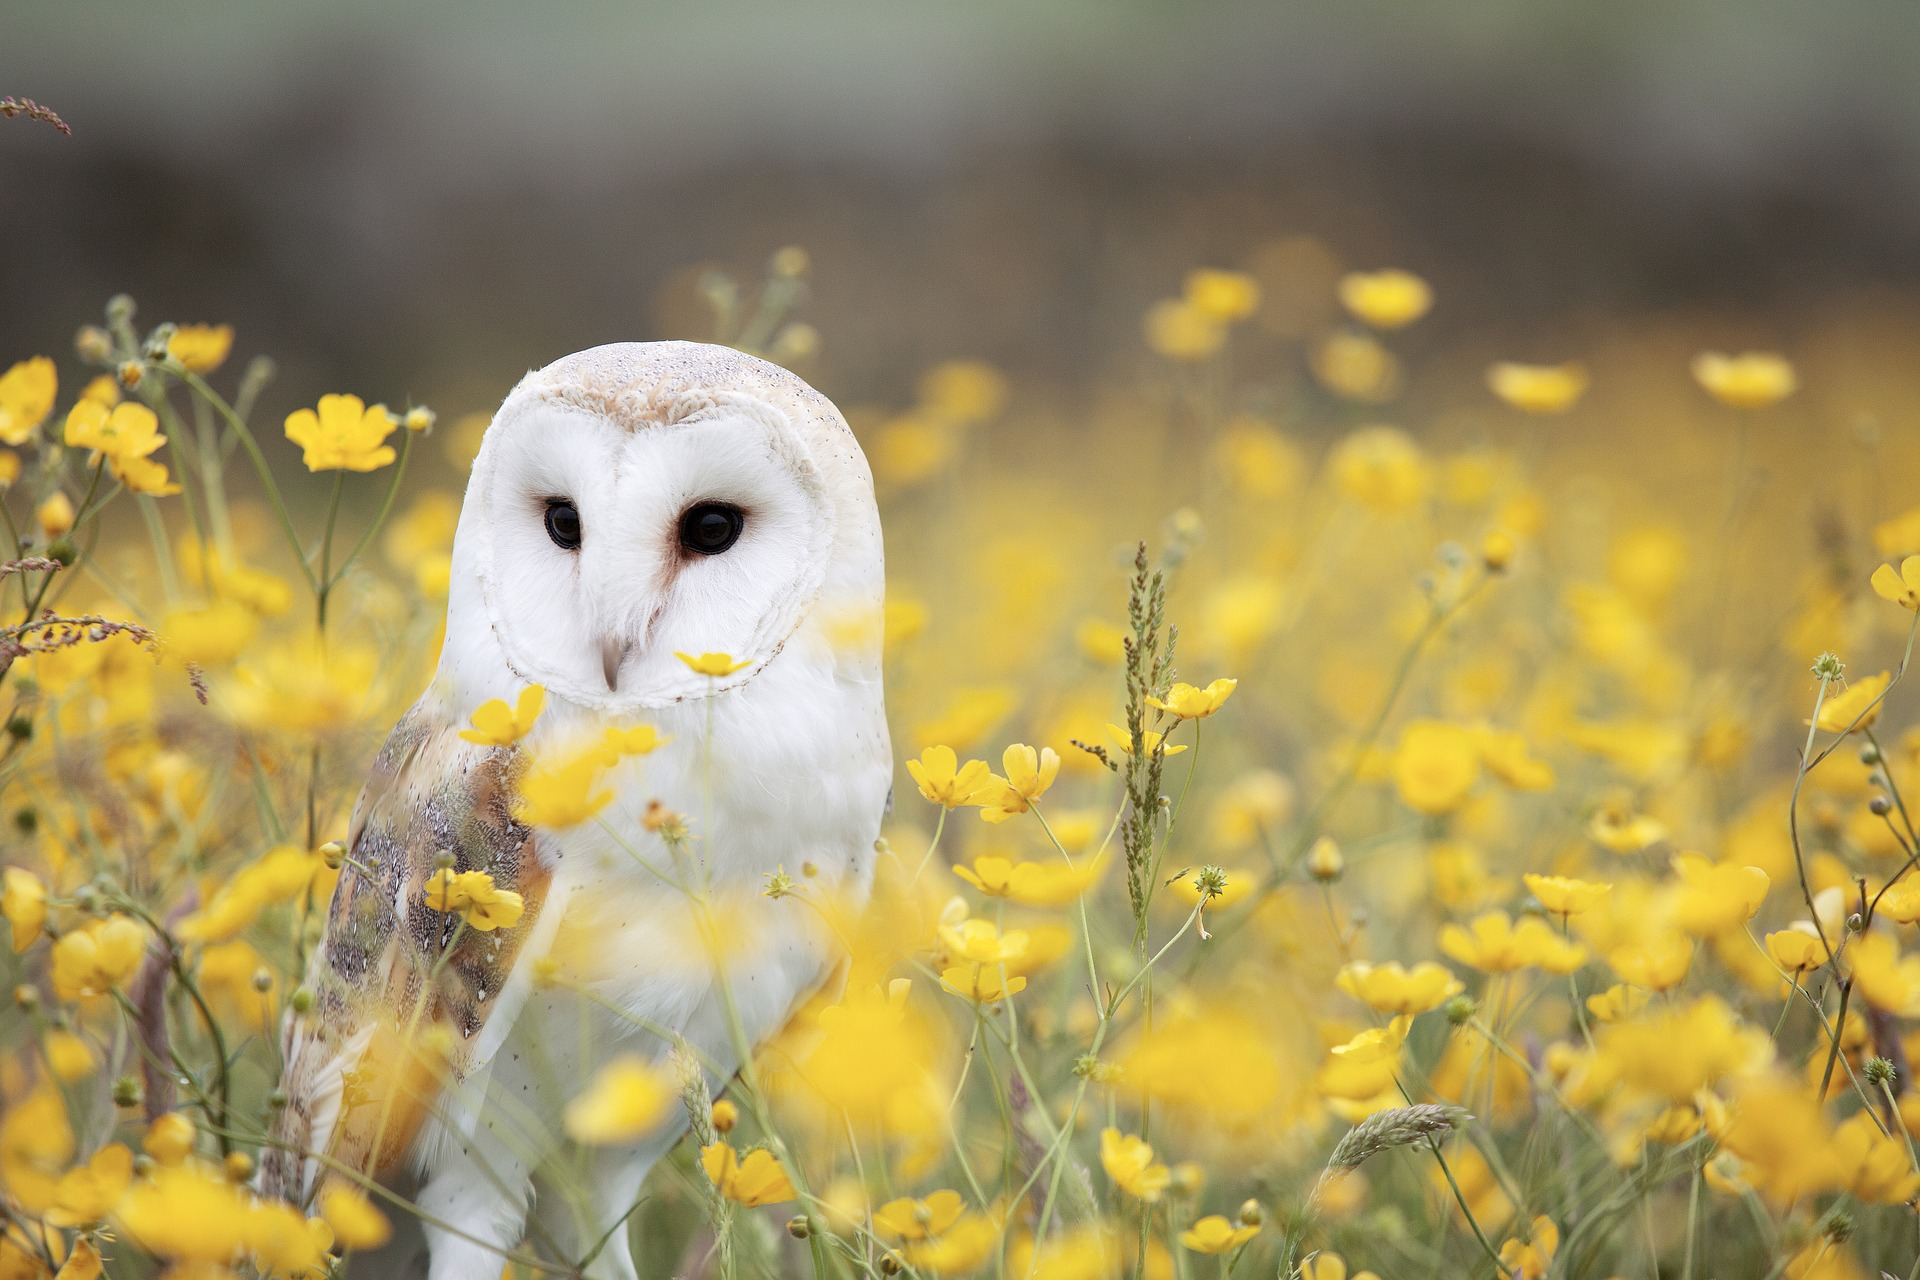 Owl in Flower Fields